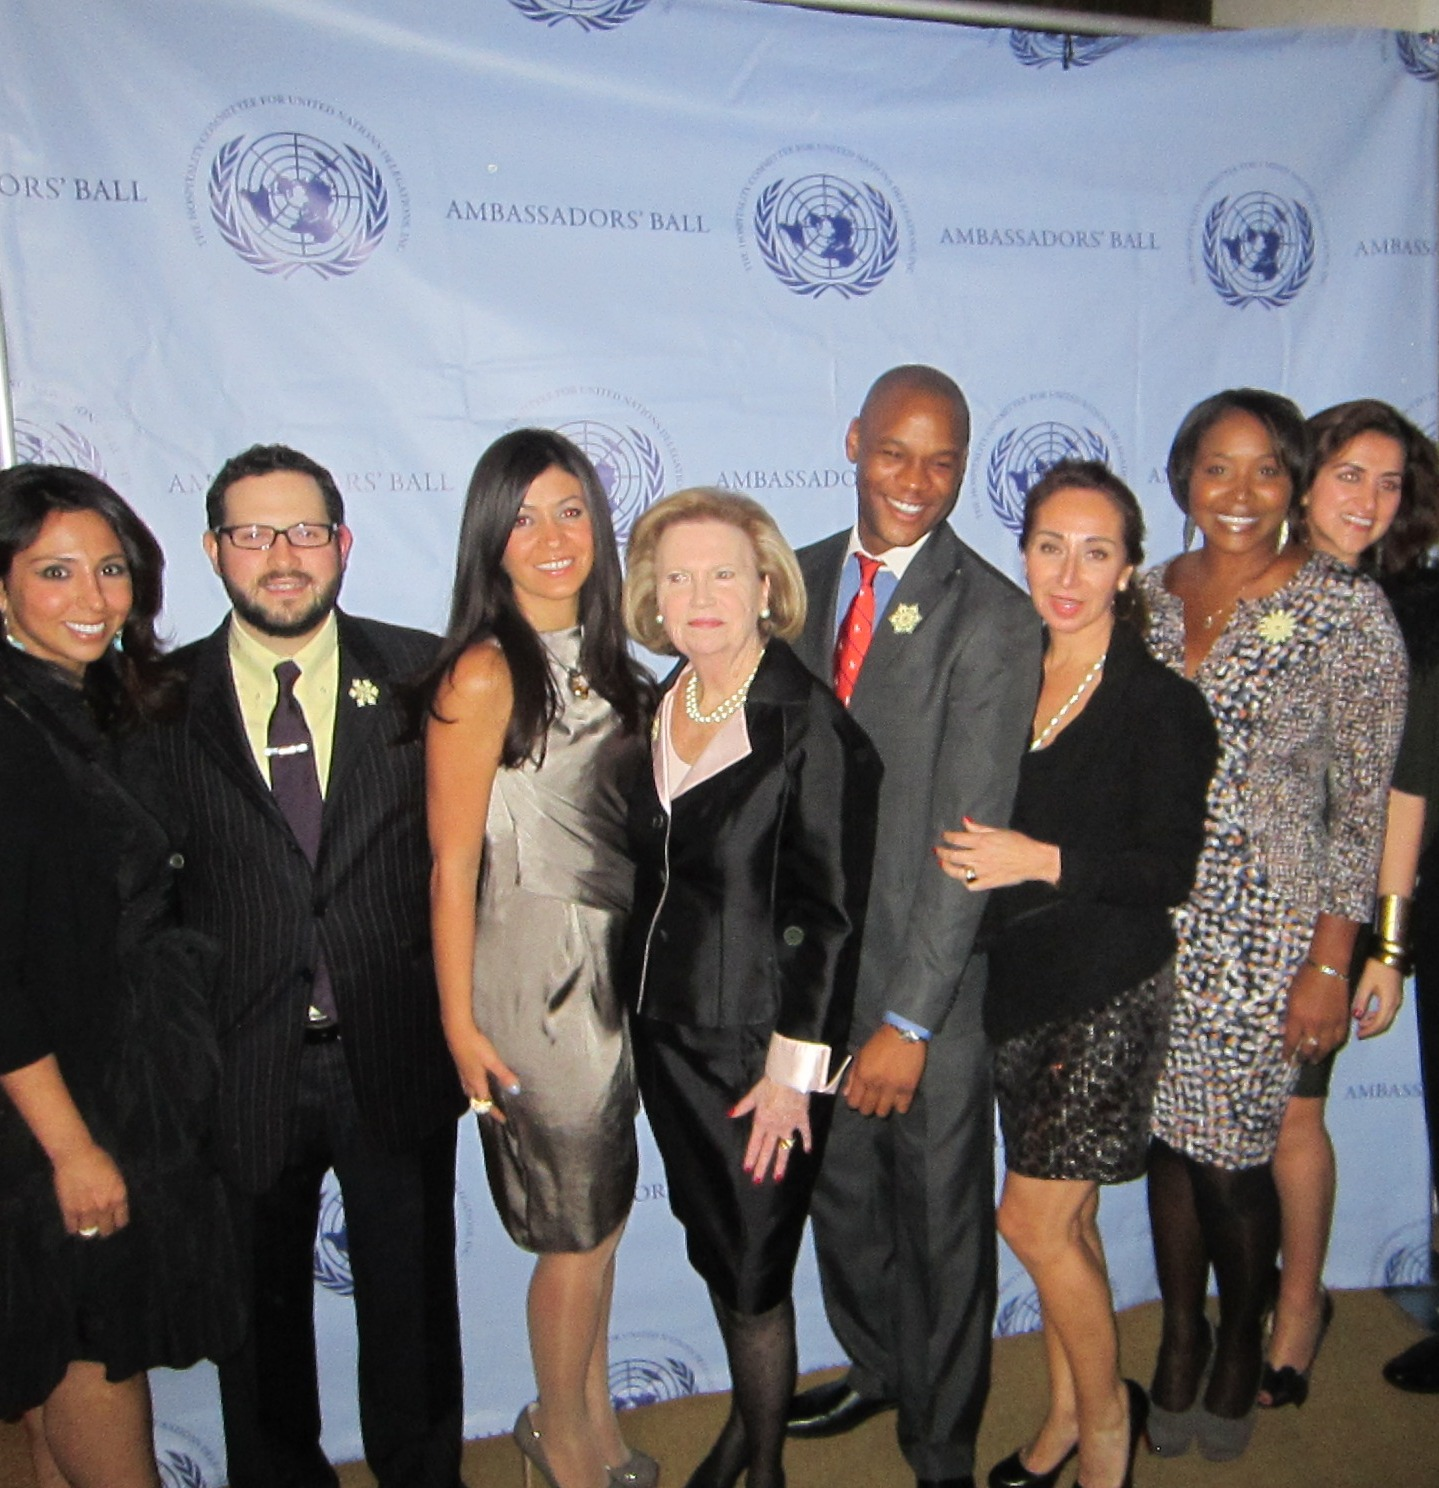 2011 Kickoff Party - United Nations Ambassadors Ball